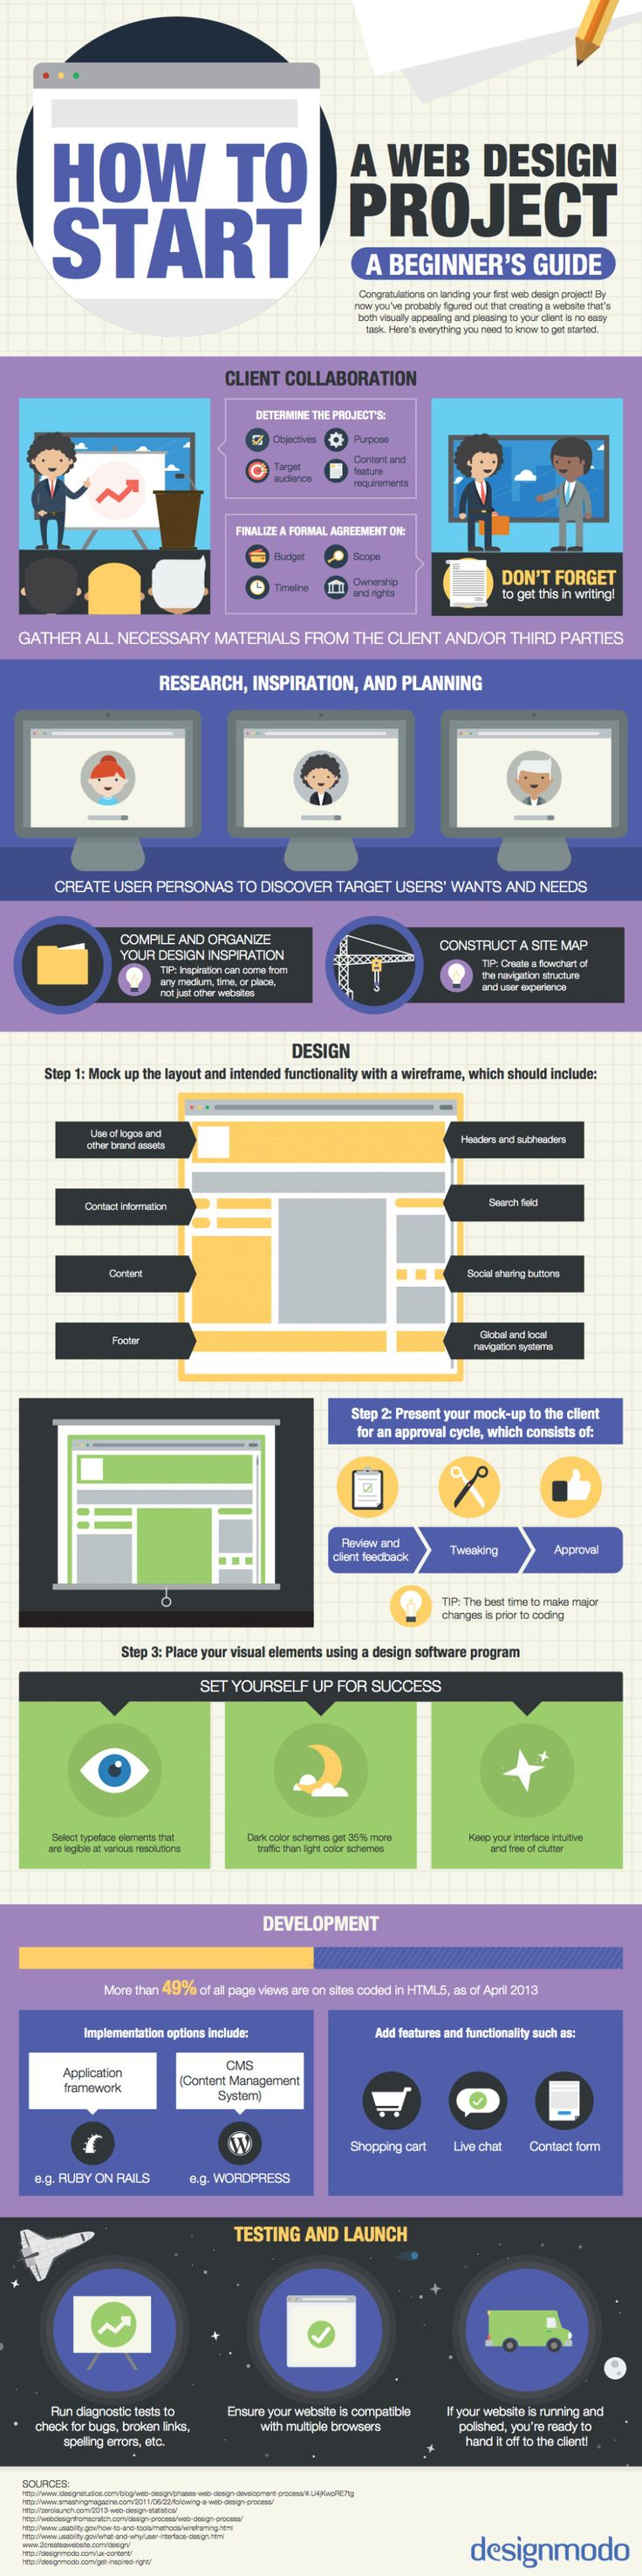 How To Start A Web Design Project | Infographic #coriate #webdesign #webdevelopment